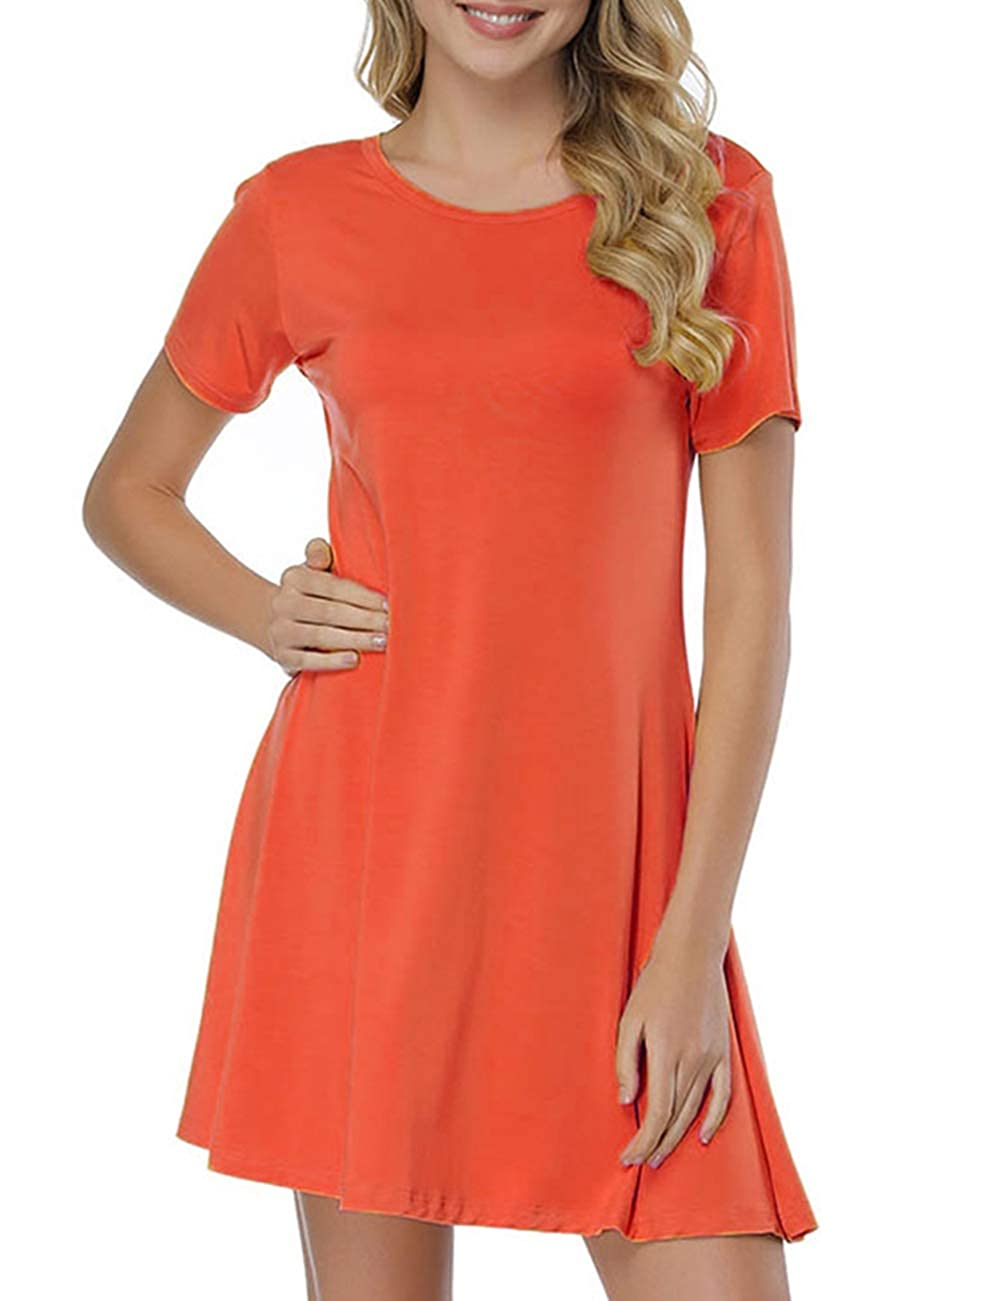 orange JOYMODE Women's Short Sleeve Casual Swing Bamboo TShirt Comfy Midi Dresses